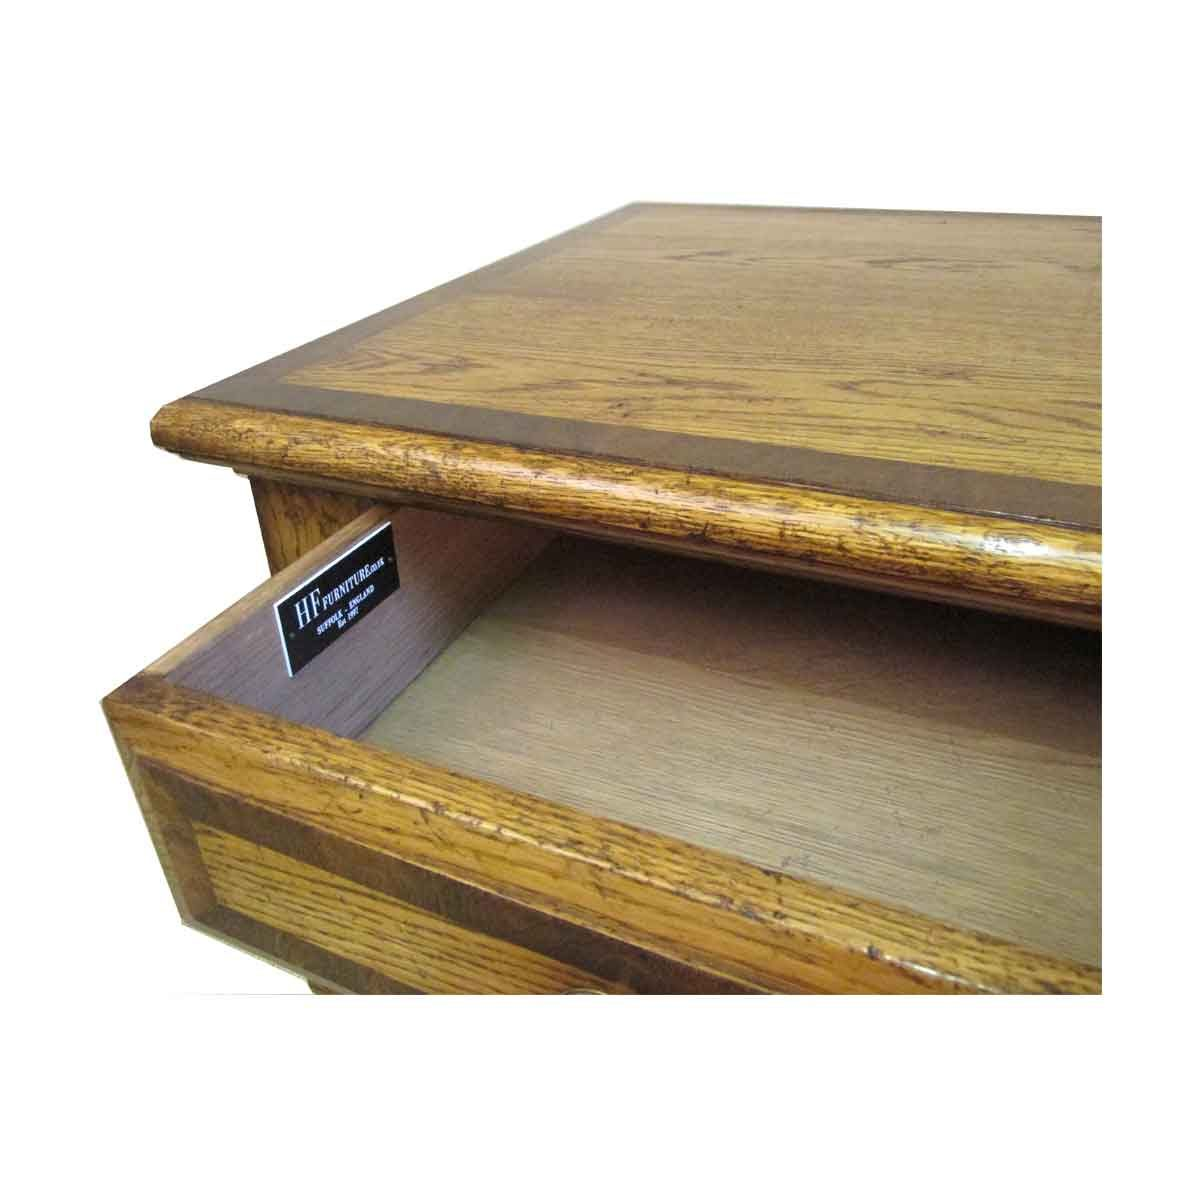 Bespoke Cross-Banded Coffee Table Handcrafted in Suffolk